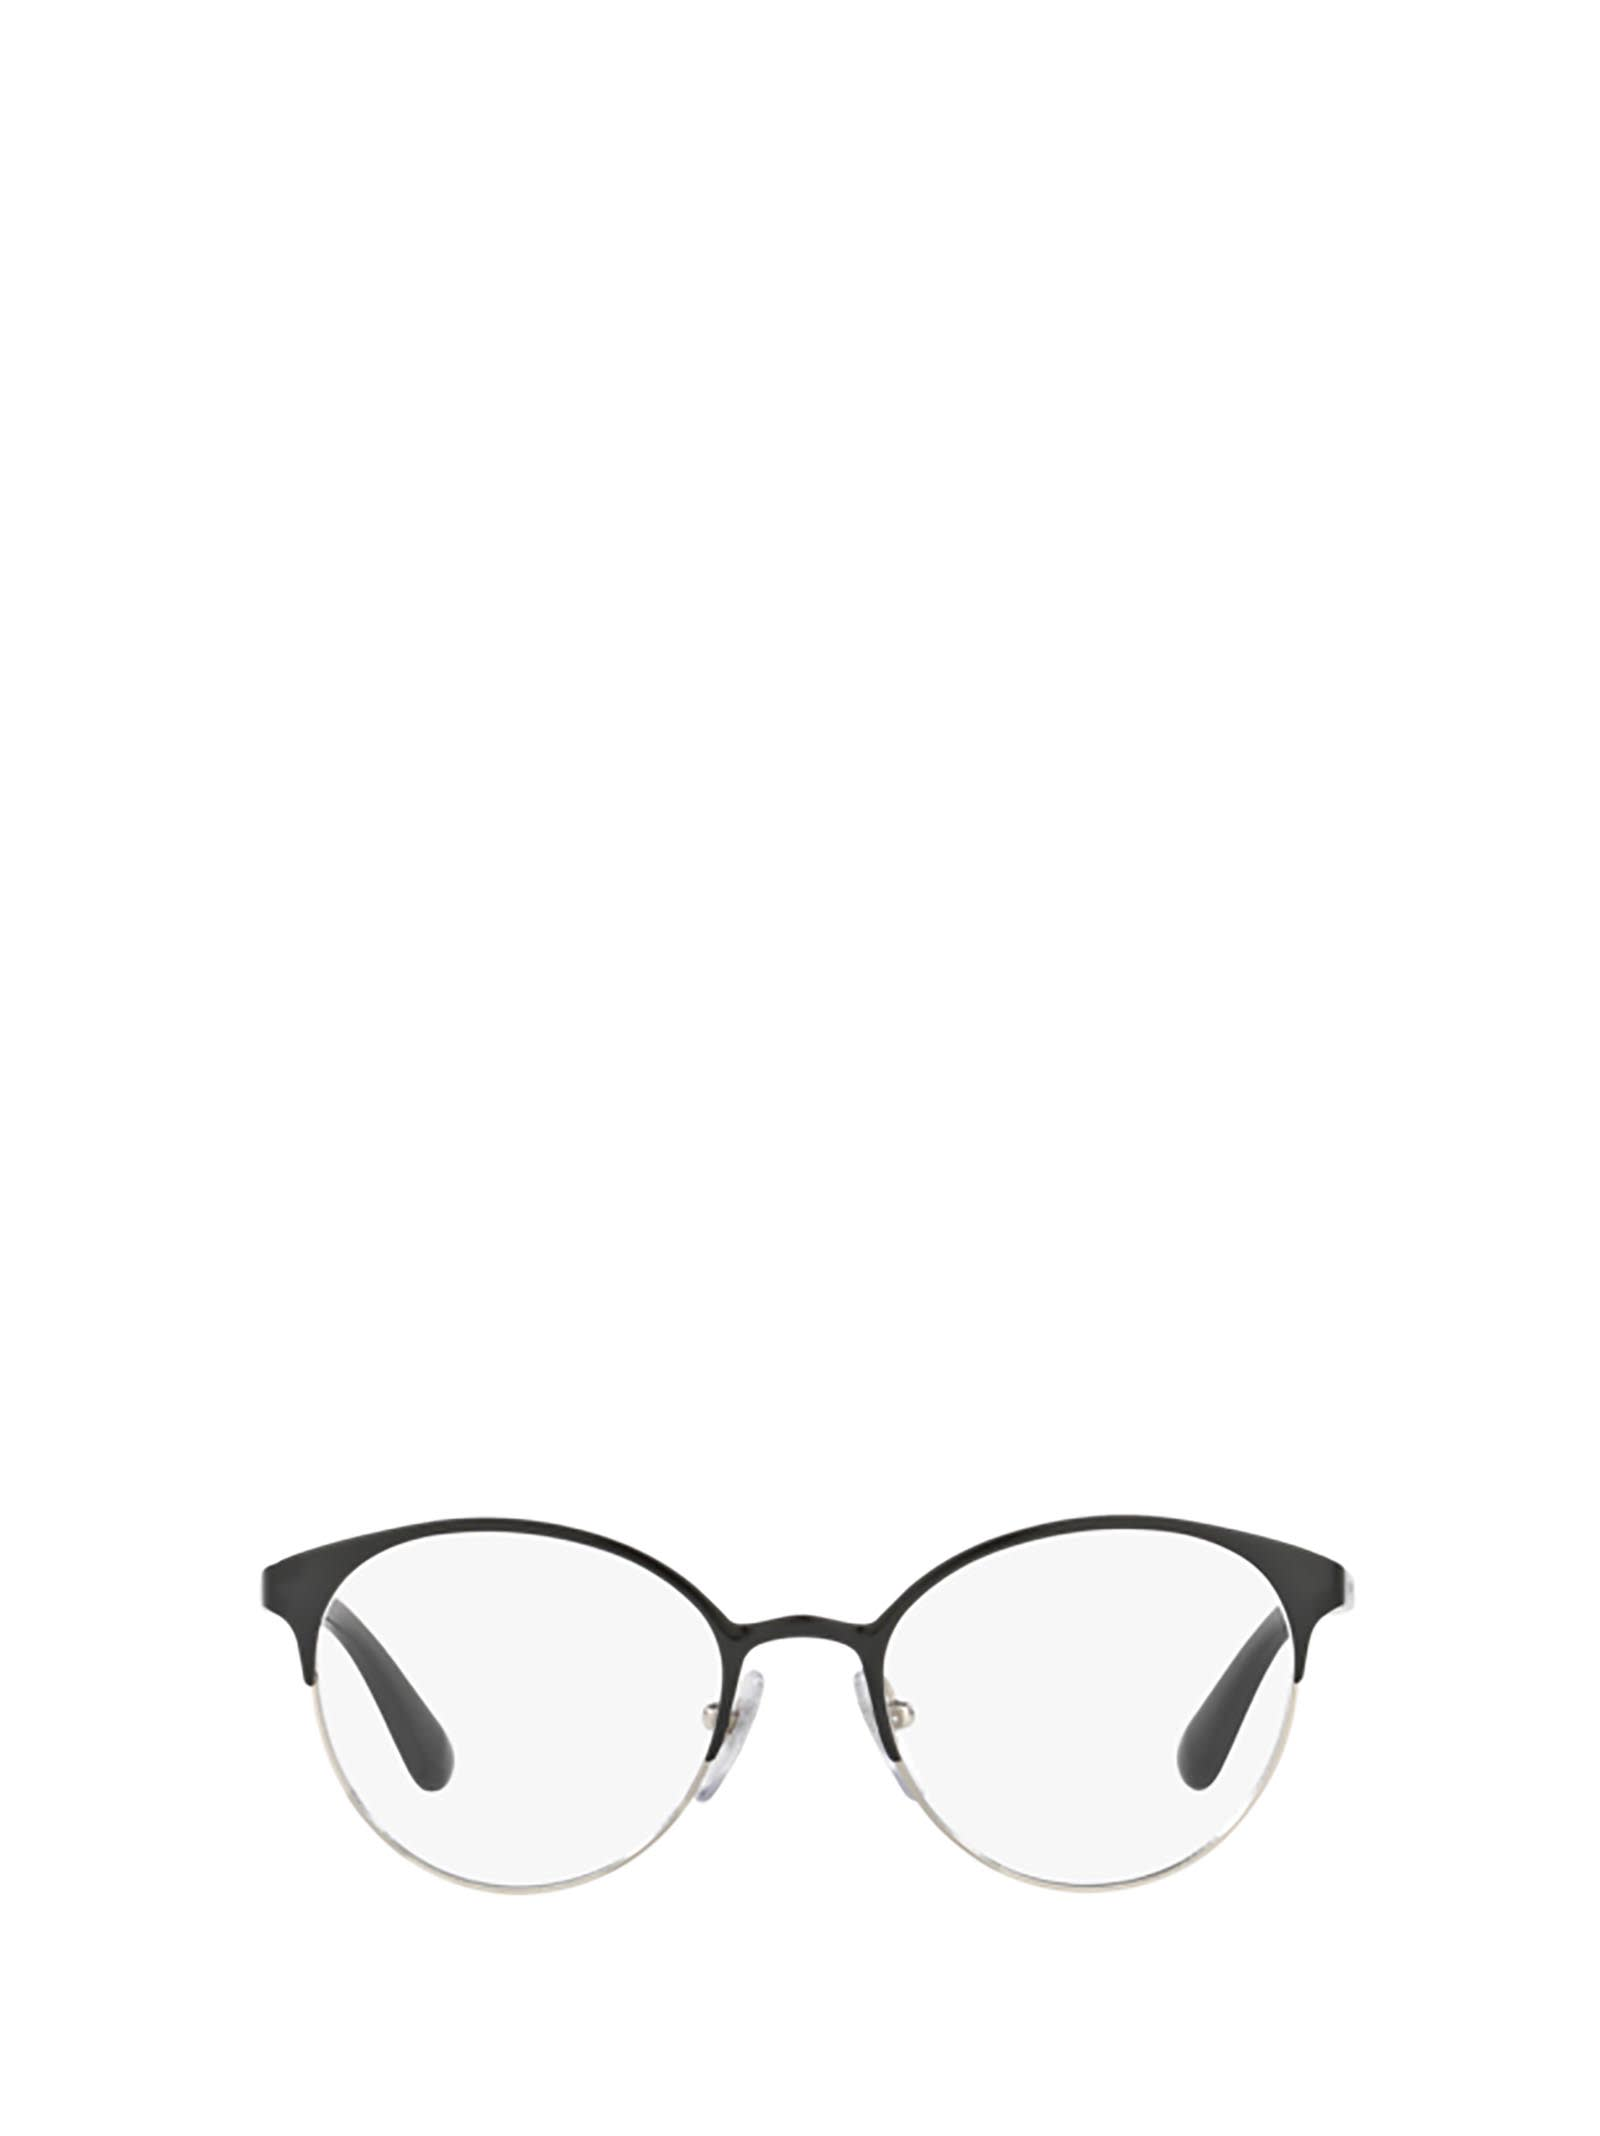 Vogue Eyewear Vogue Vo4011 Top Black / Silver Glasses